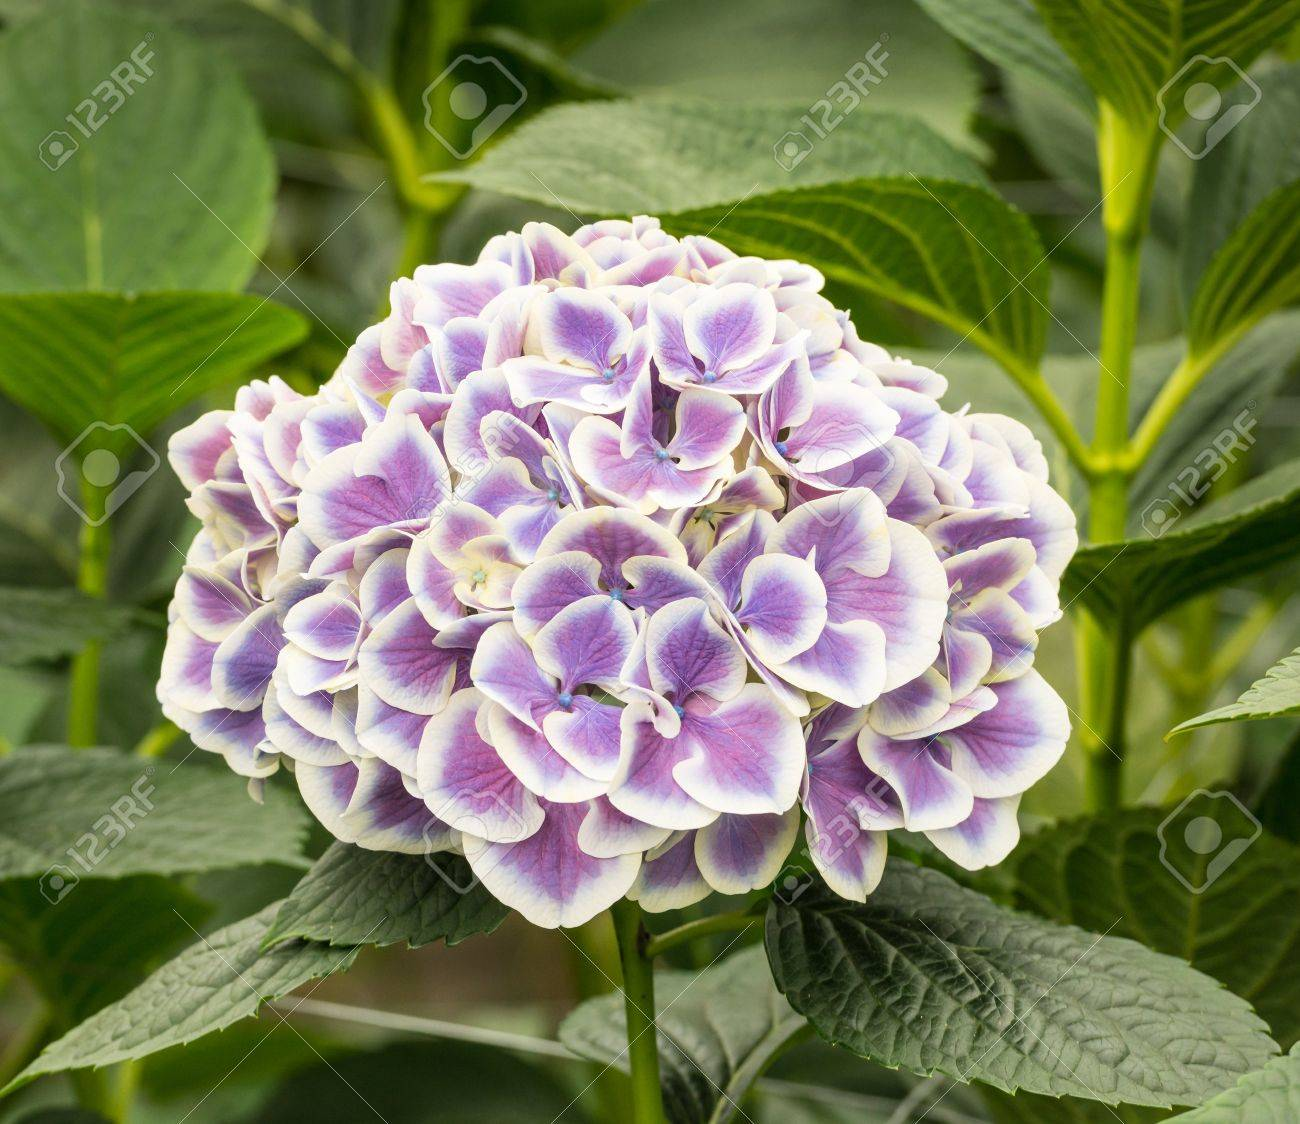 picture of hydrangea flower  flower, Beautiful flower